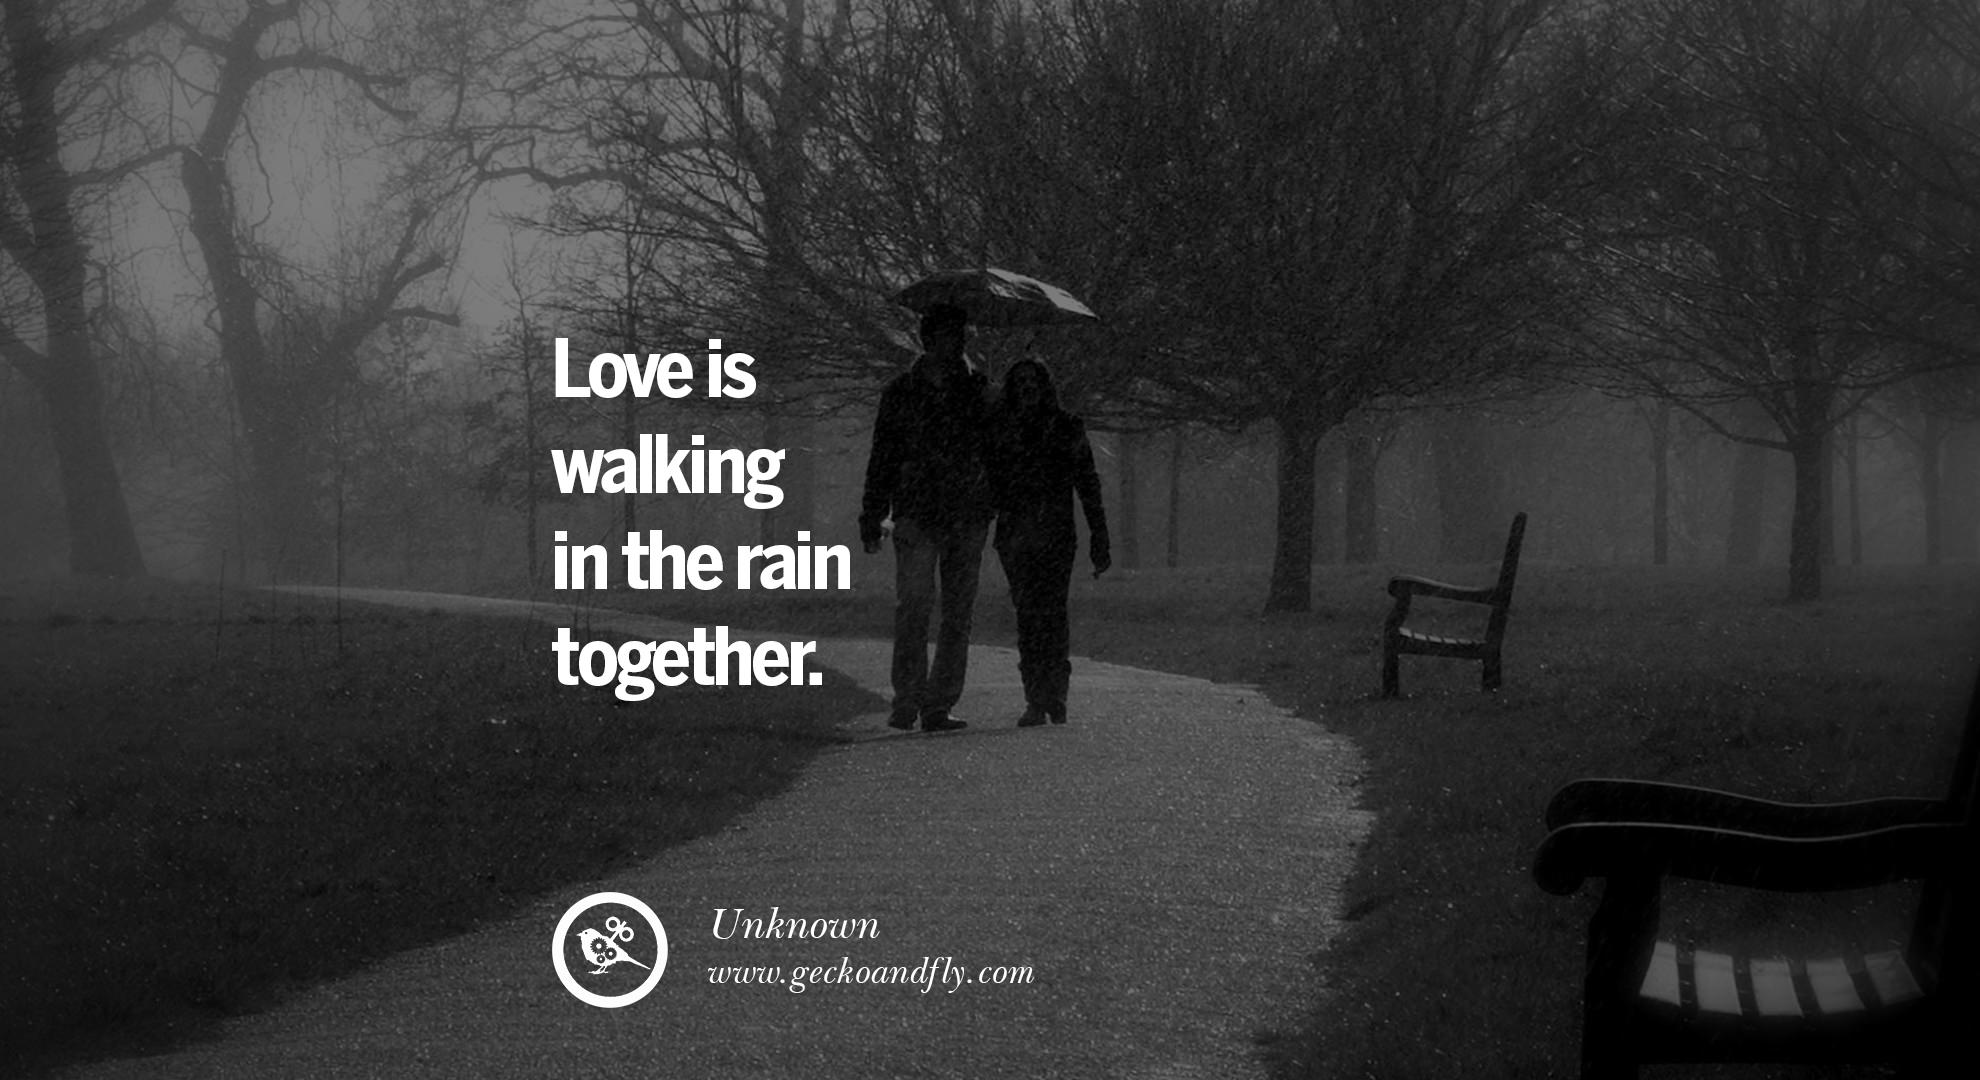 Together Quotes Love Quotes Walking Together Walking Together Love Quotes Related